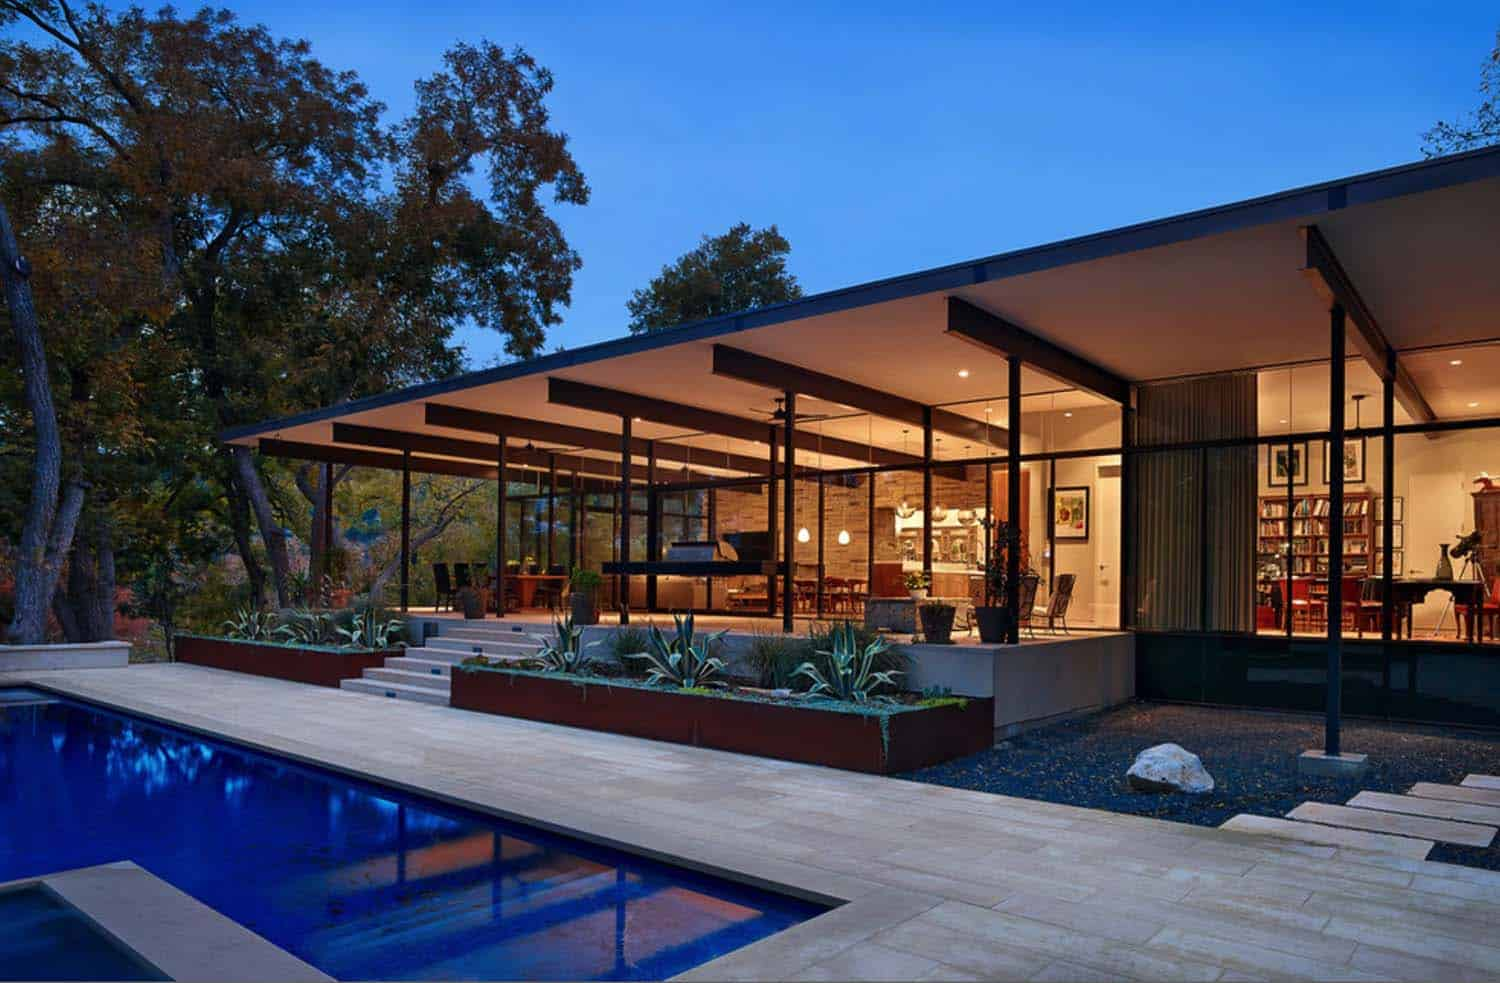 Creekside Home Of Glass And Steel Infused With Warmth In